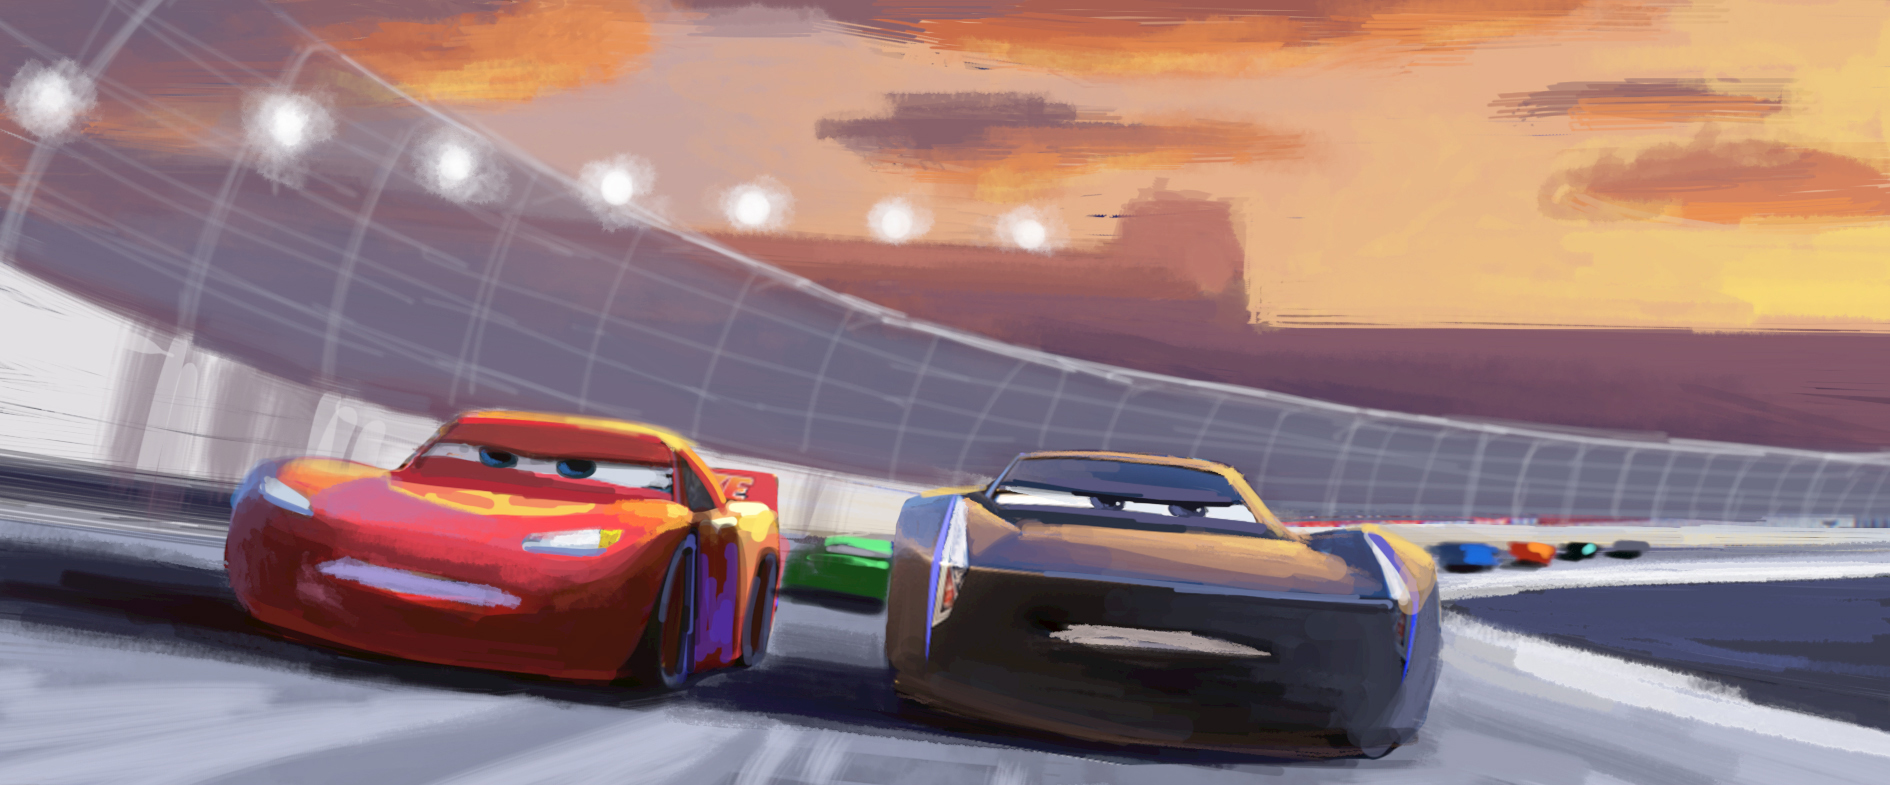 see cars 3 scene evolution from storyboard to final cut. Black Bedroom Furniture Sets. Home Design Ideas